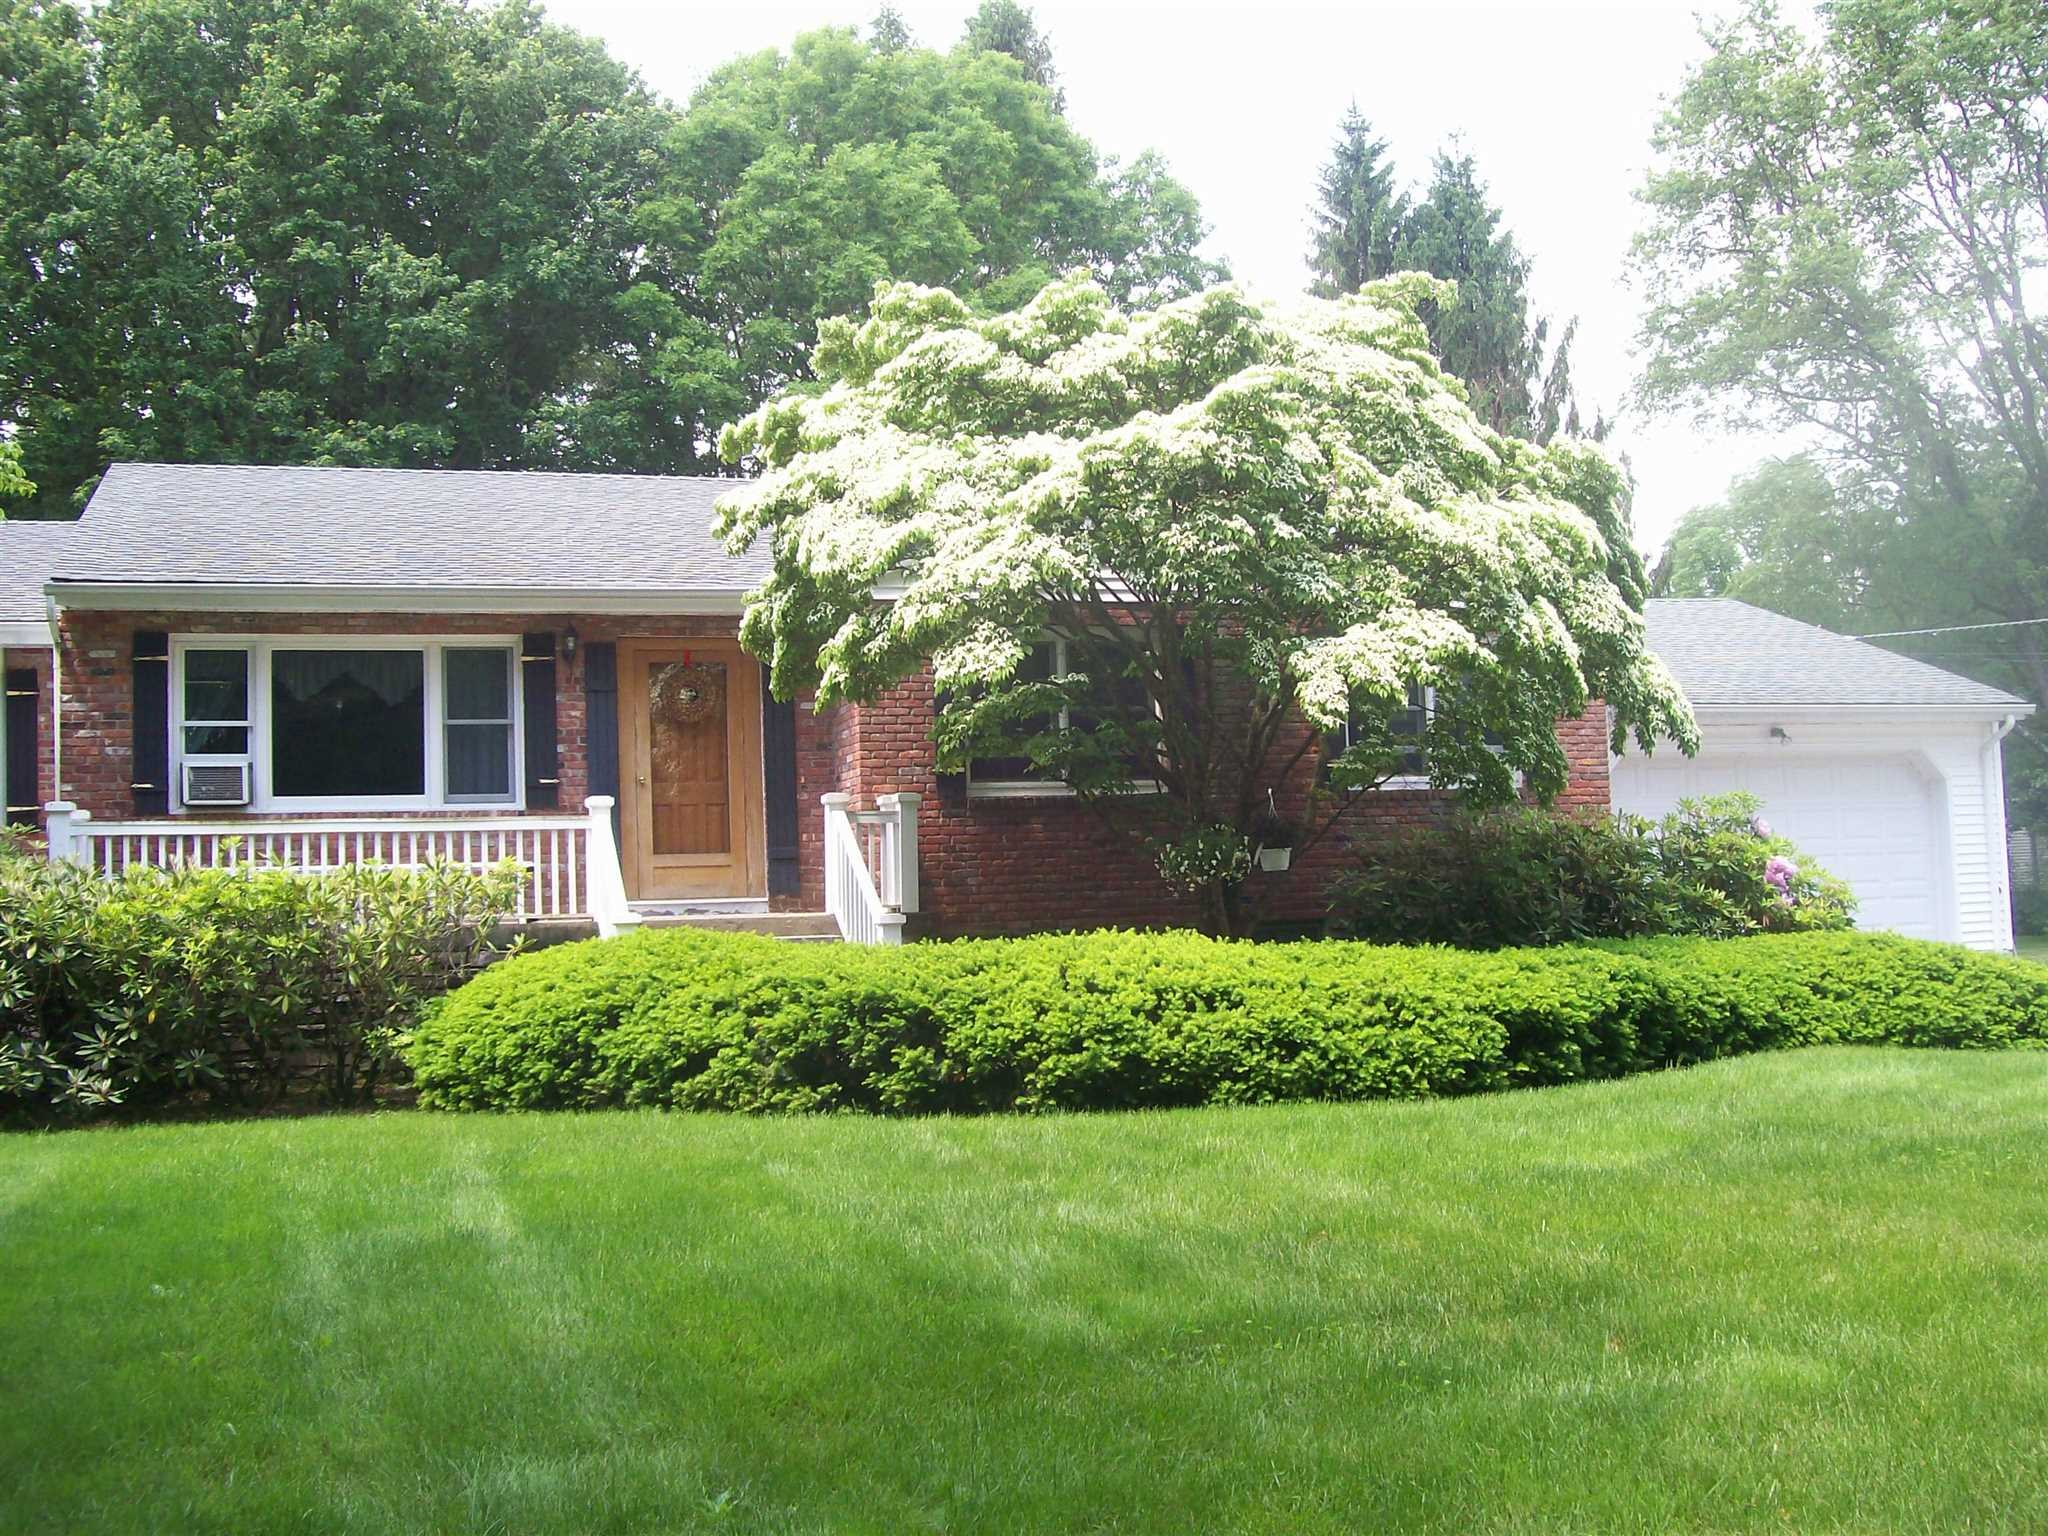 Single Family Home for Sale at 49 LAKESPRING Drive 49 LAKESPRING Drive Southeast, New York 10509 United States